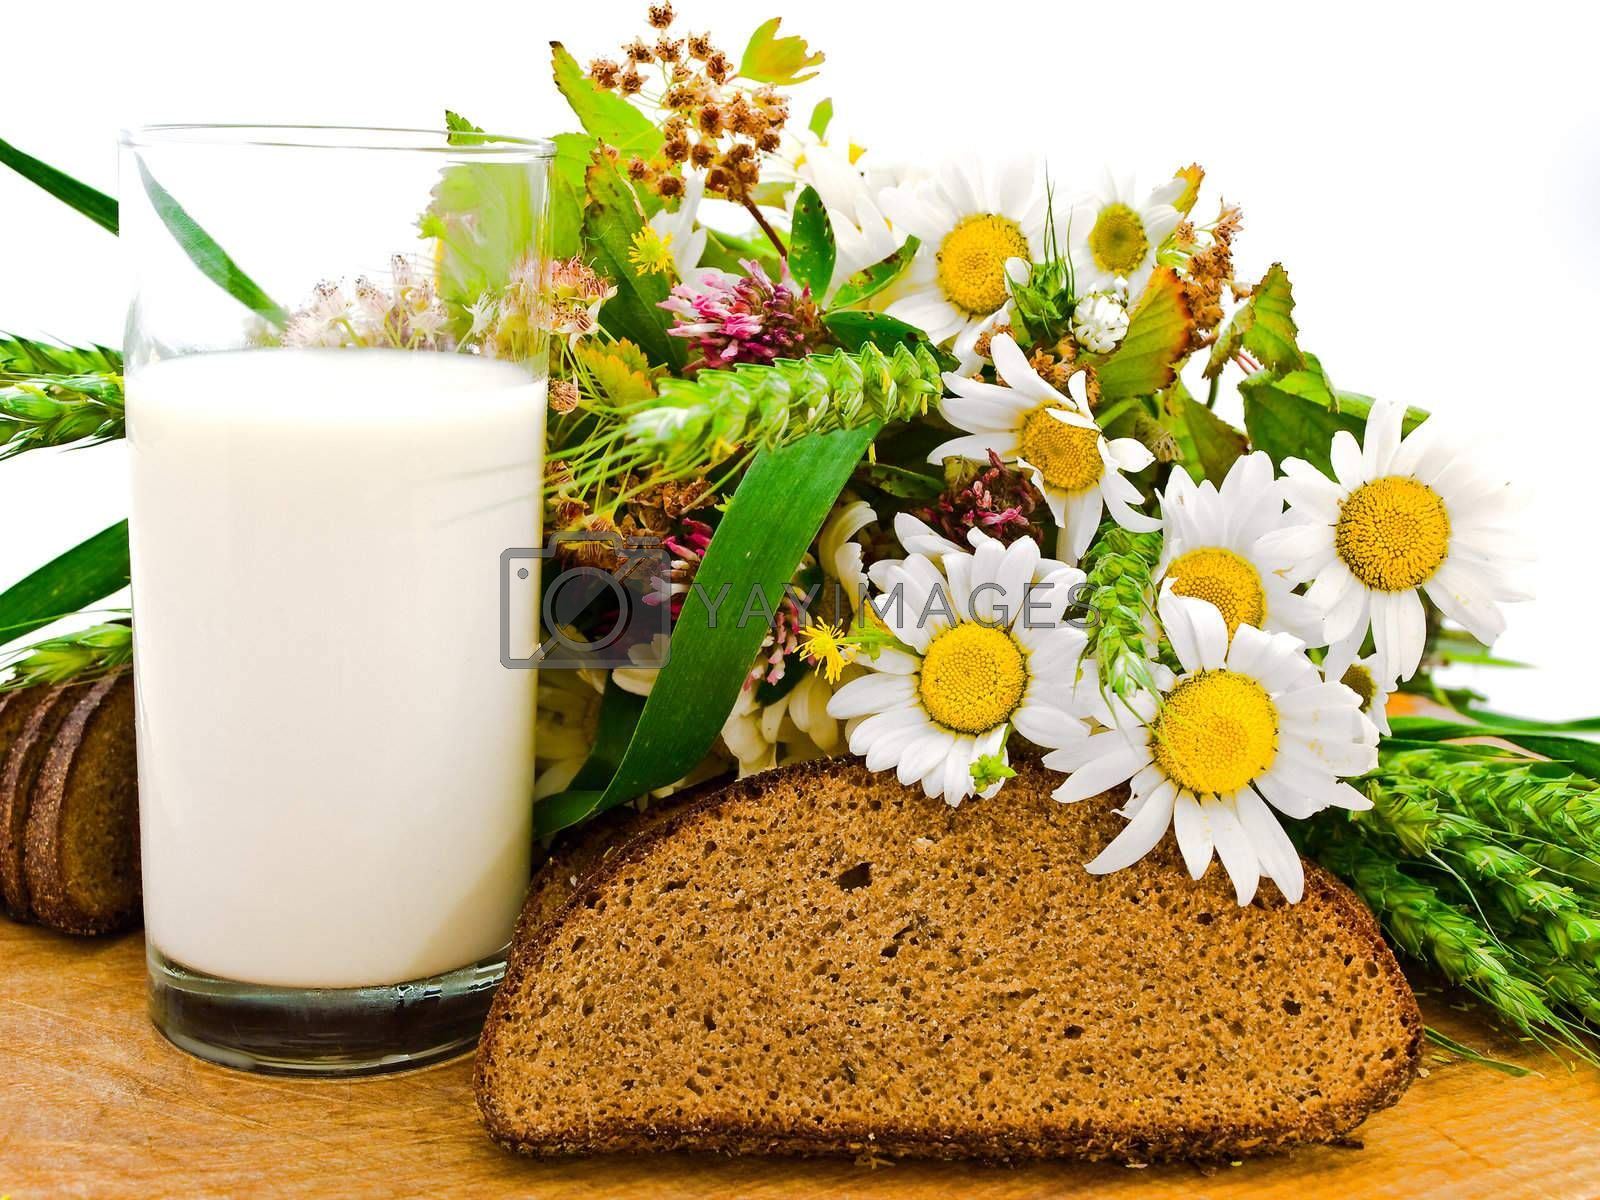 Royalty free image of bread milk and camomile   by SNR